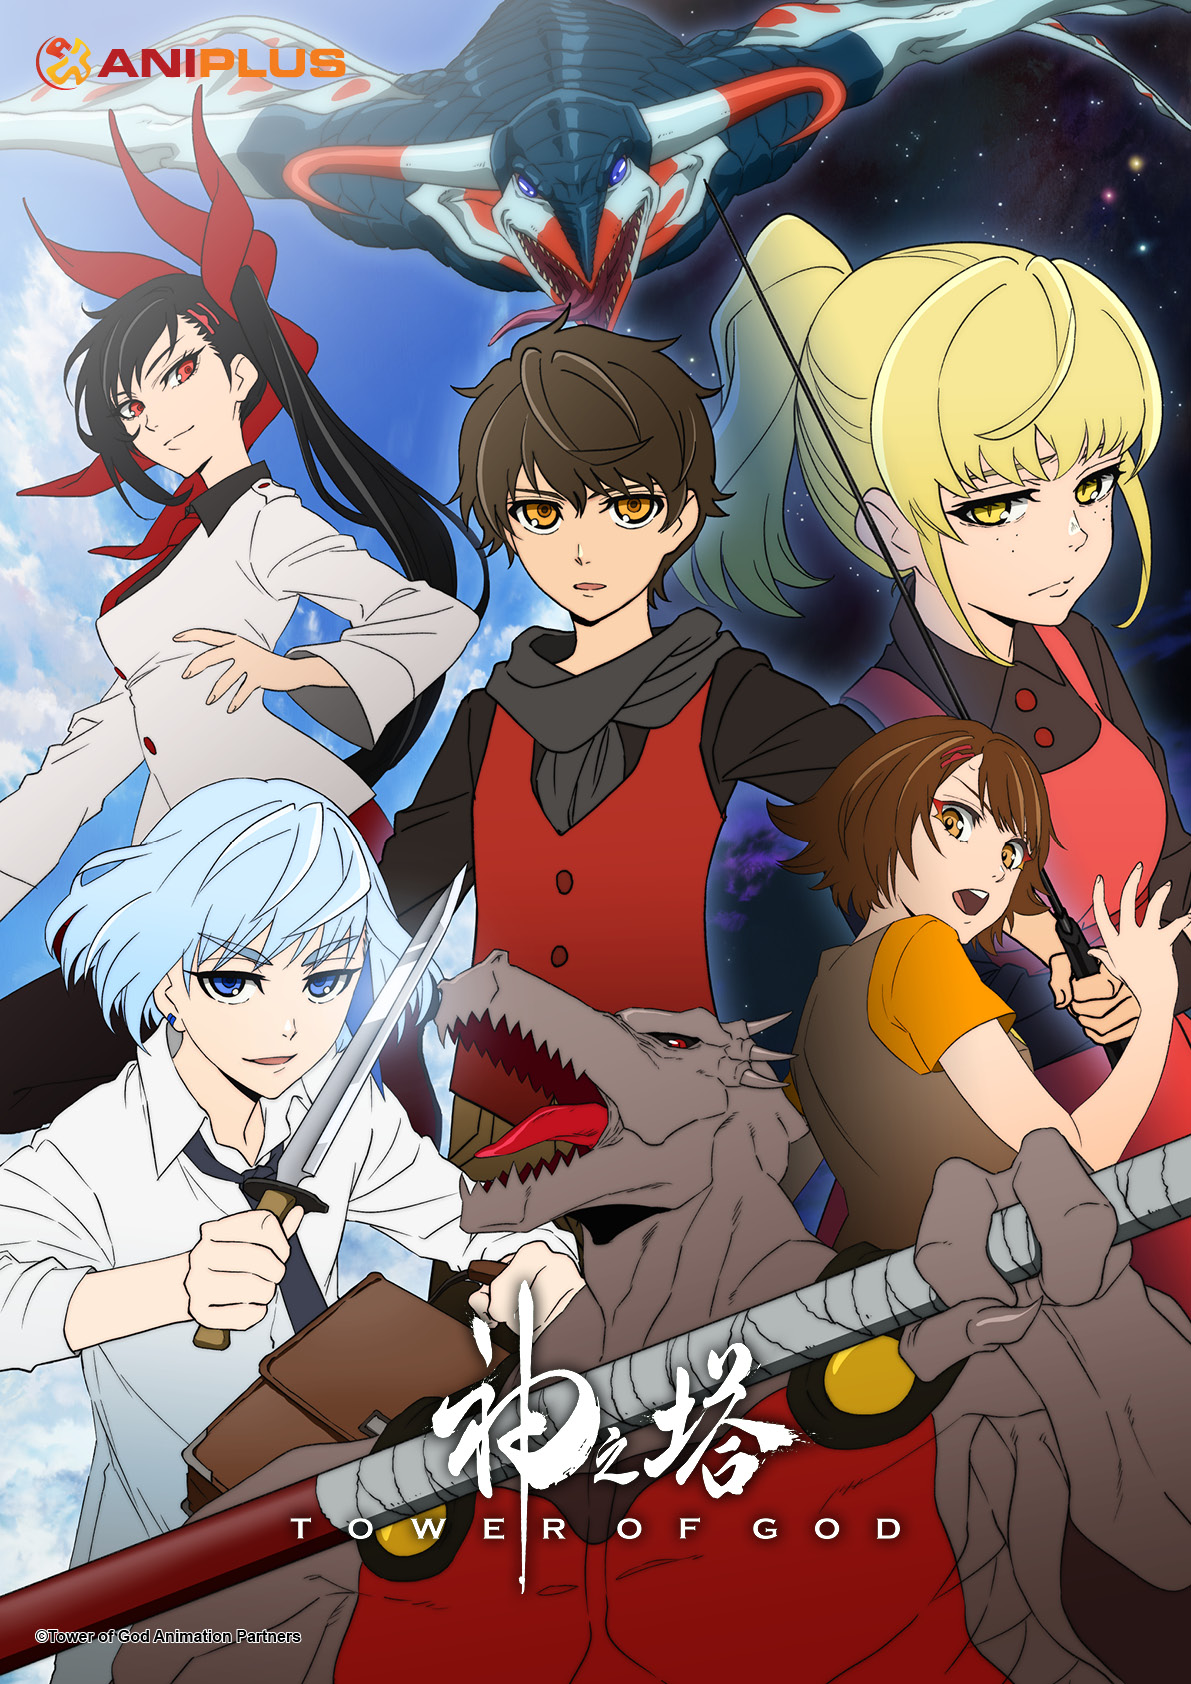 ANIPLUS Asia Spring 2020 anime - Tower of God